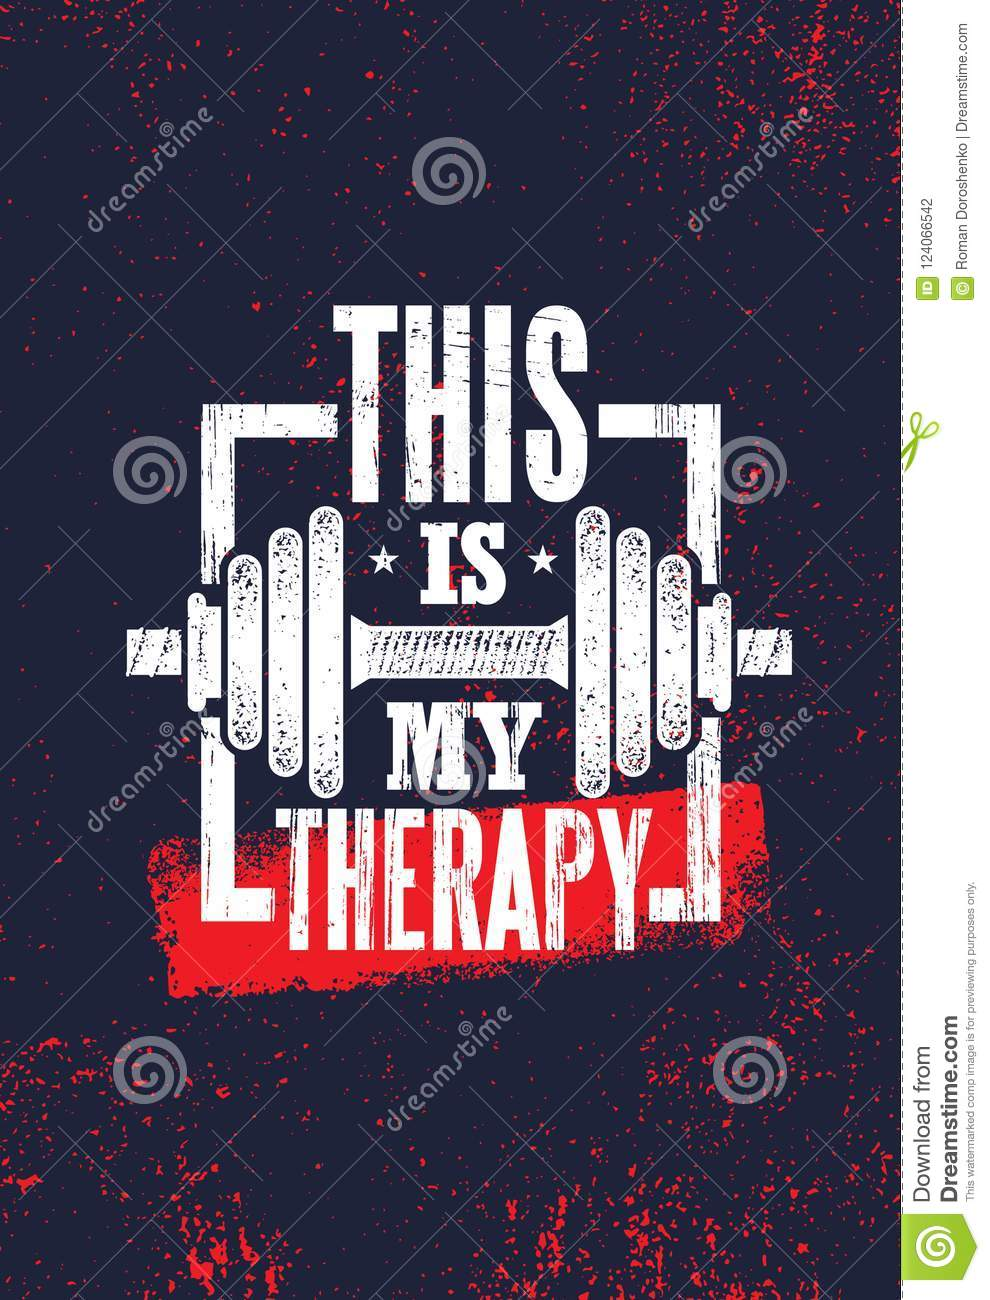 This Is My Therapy Fitness Muscle Workout Motivation Quote Poster Vector Concept Inspiring Gym Creative Illustration Stock Vector Illustration Of Quote Athlete 124066542